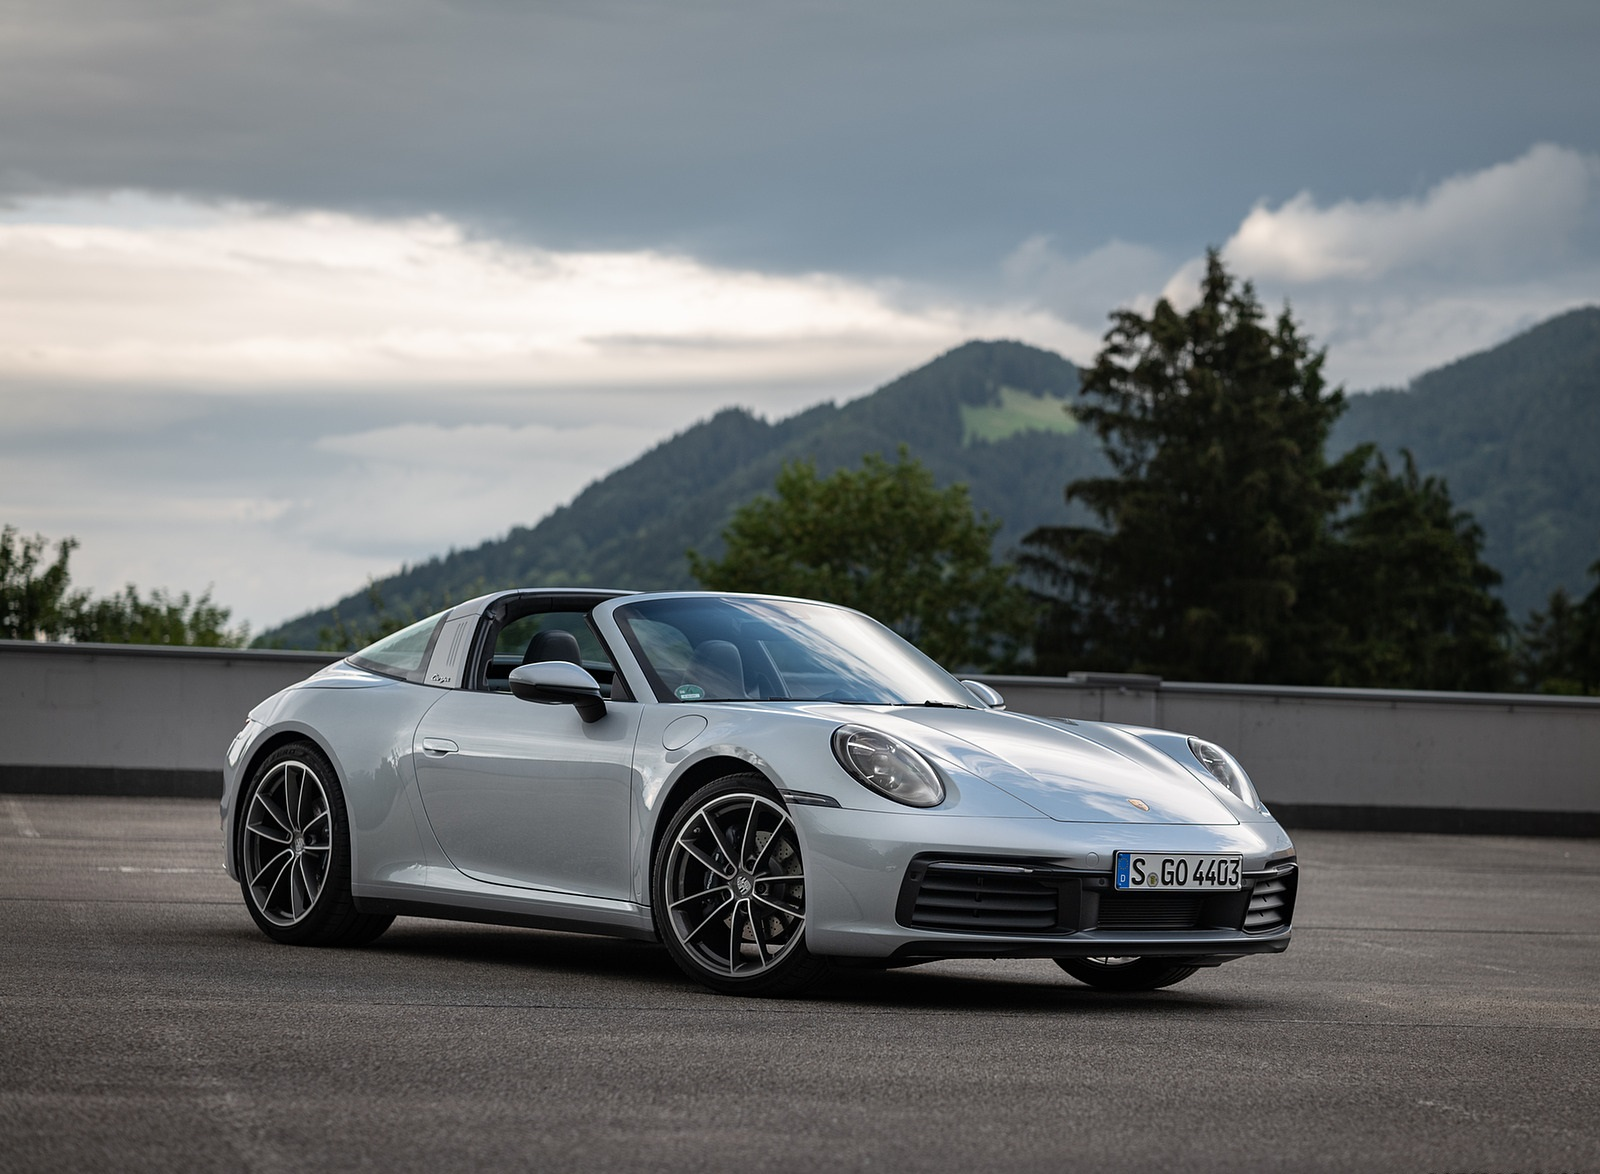 2021 Porsche 911 Targa 4 (Color: Dolomite Silver Metallic) Front Three-Quarter Wallpapers (1)